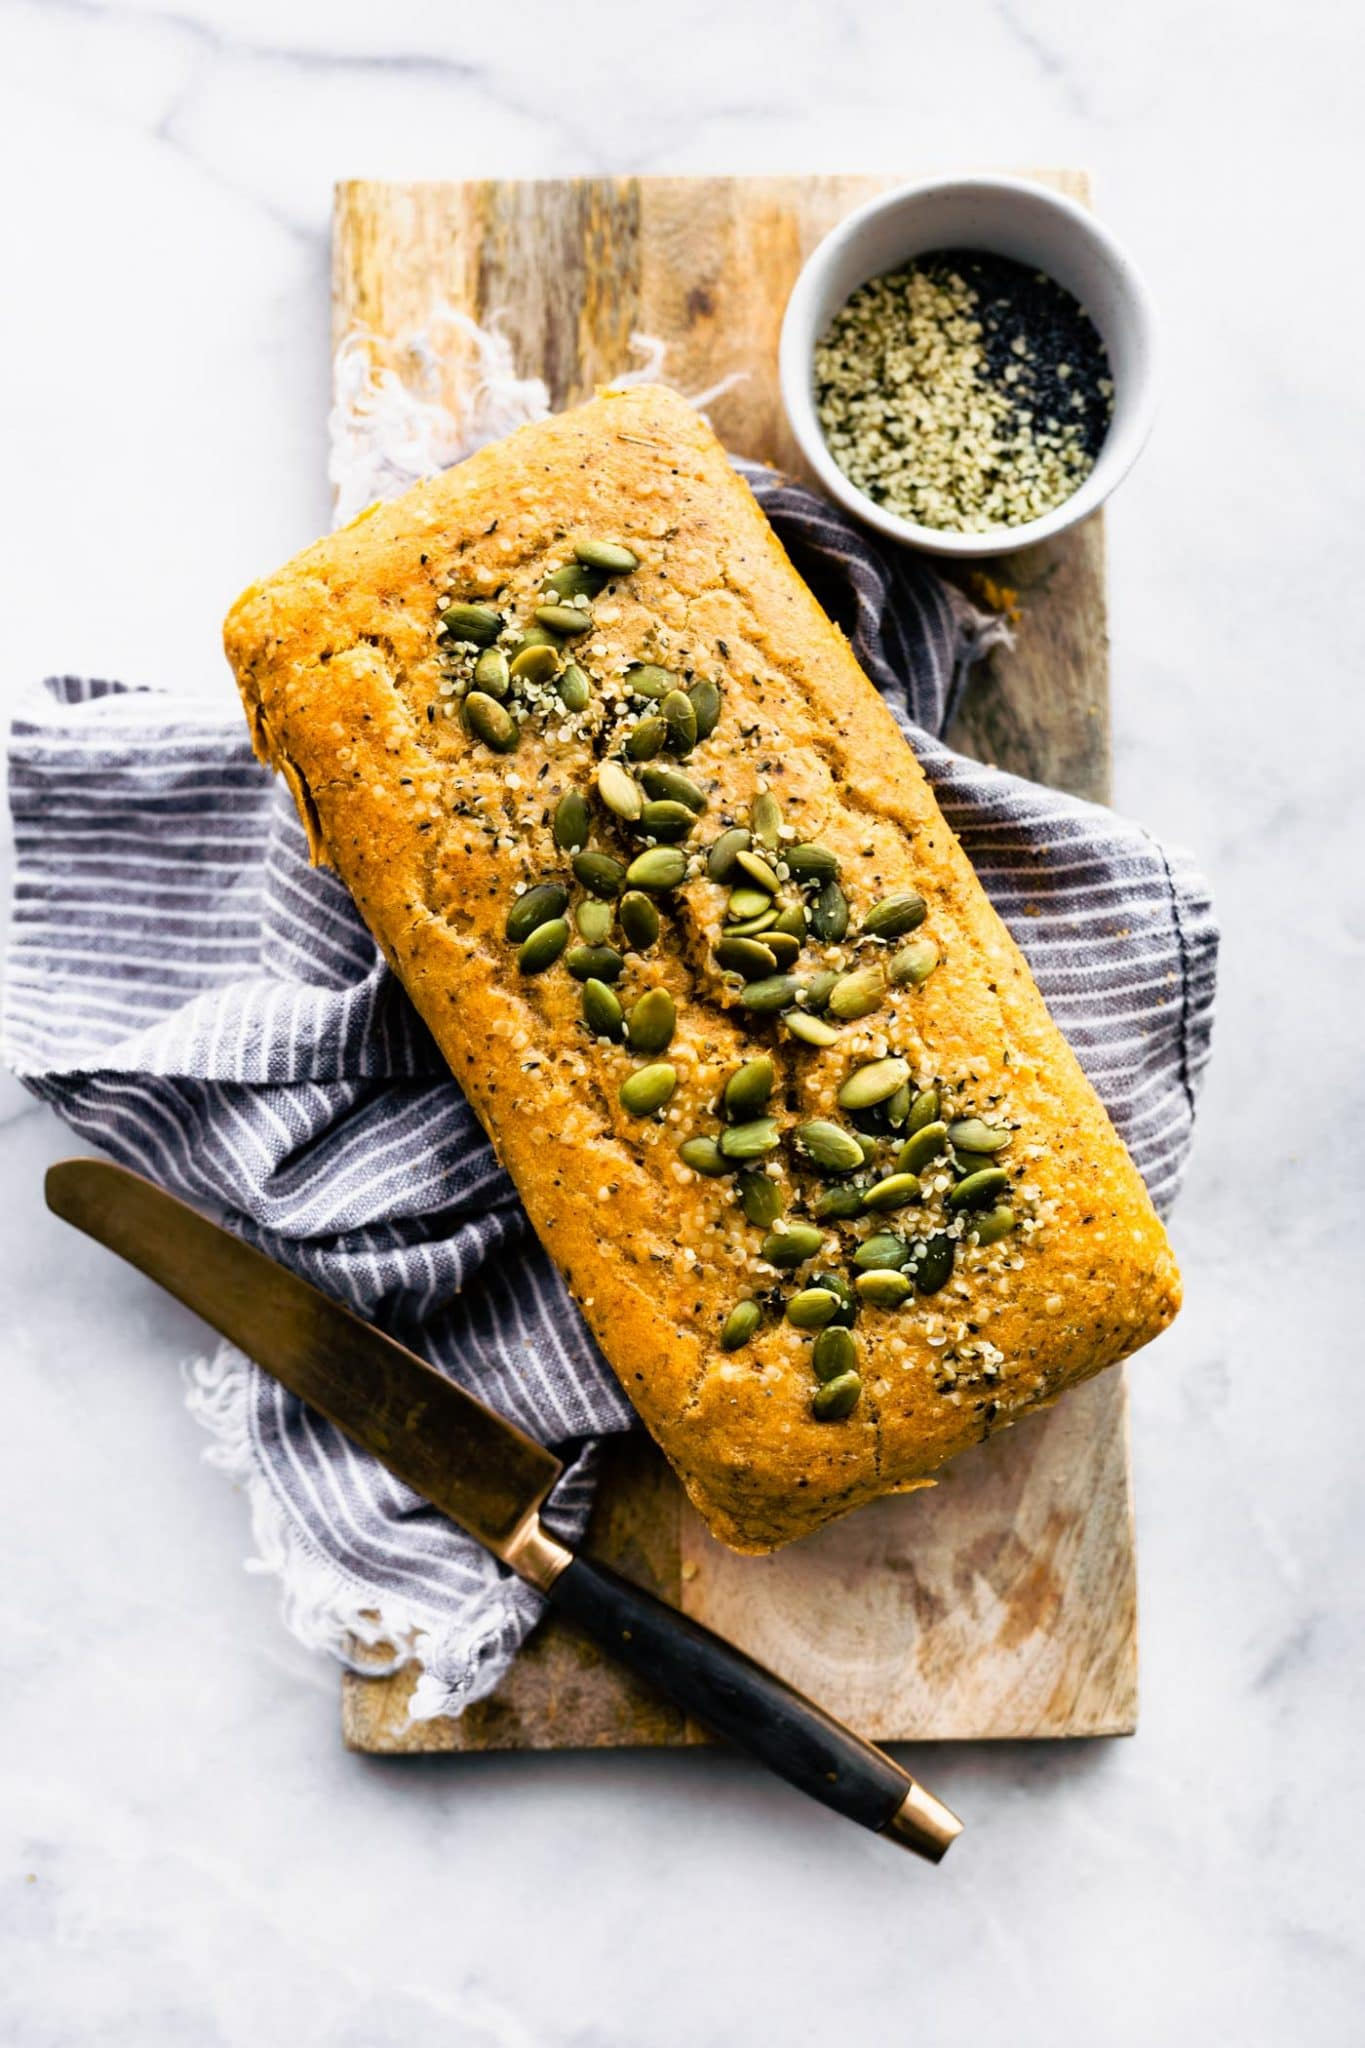 A loaf of nutty paleo bread with seeds on top on a blue napkin on a wooden cutting board with a black knife